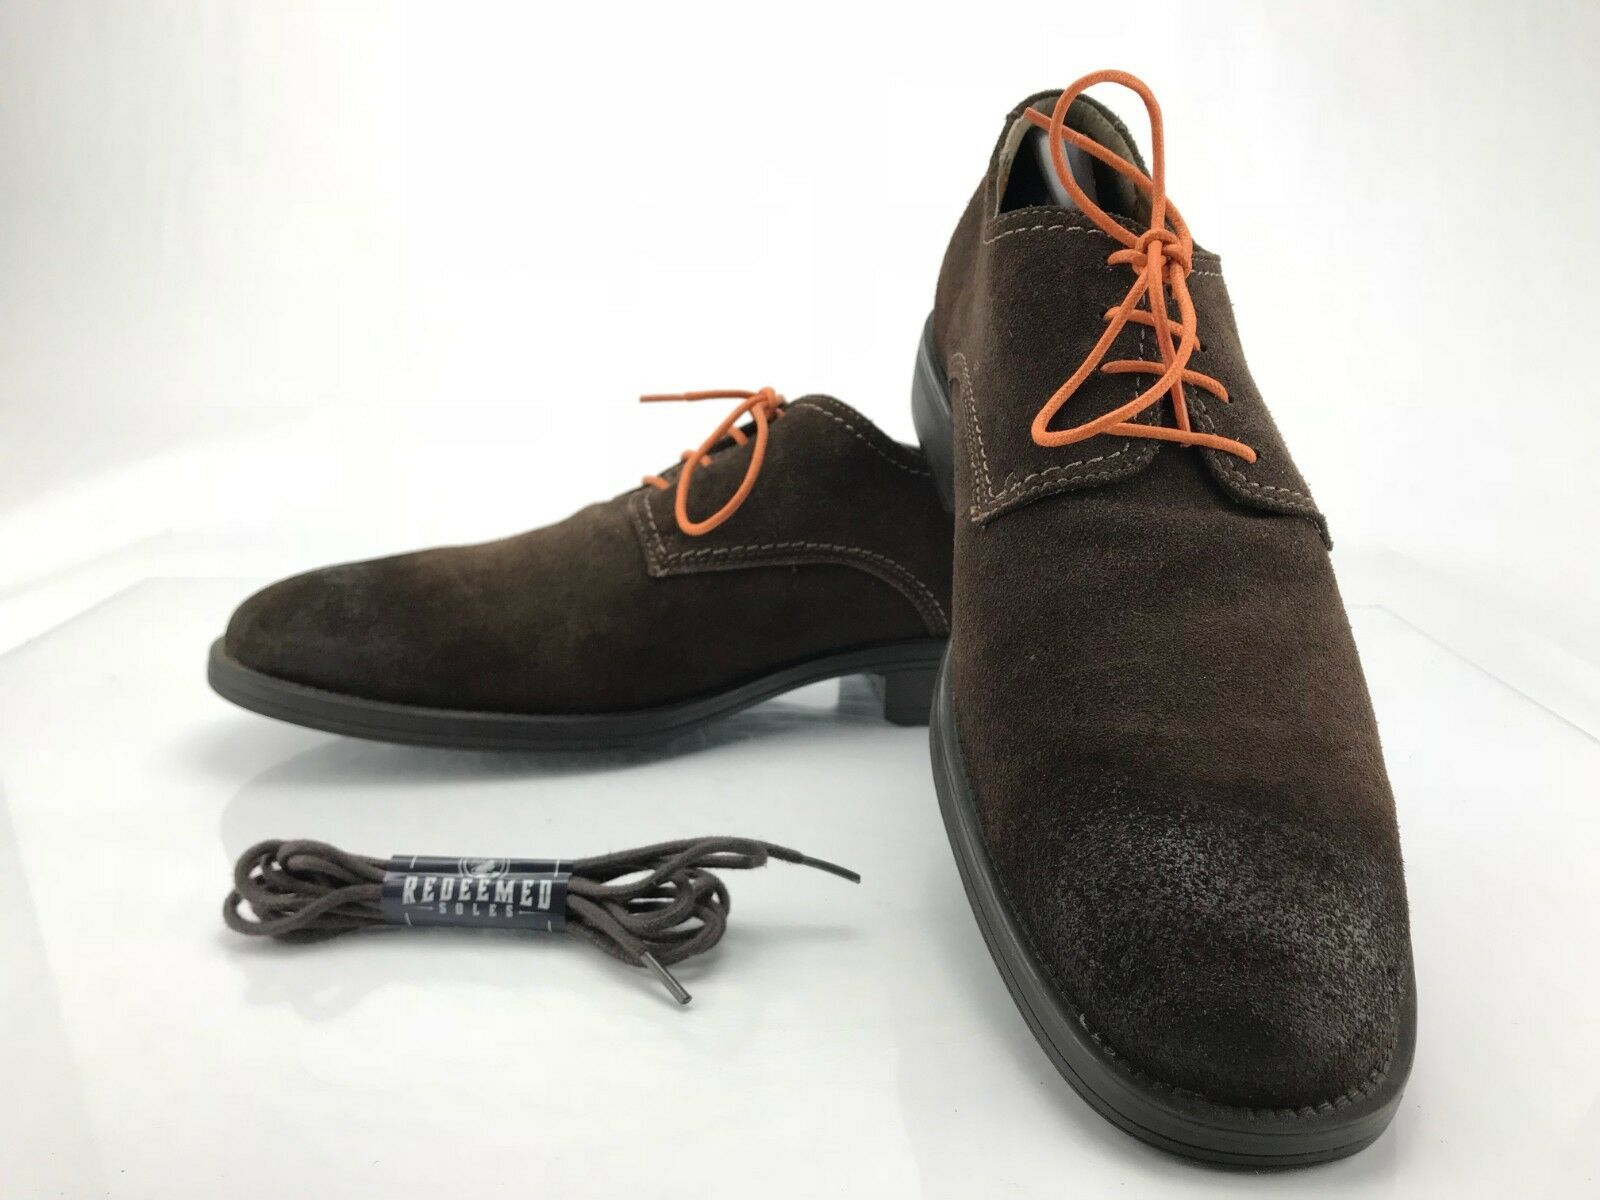 Hush Puppies Plane Oxford shoes - Dark Brown Suede Casual Men's Size 11.5 M